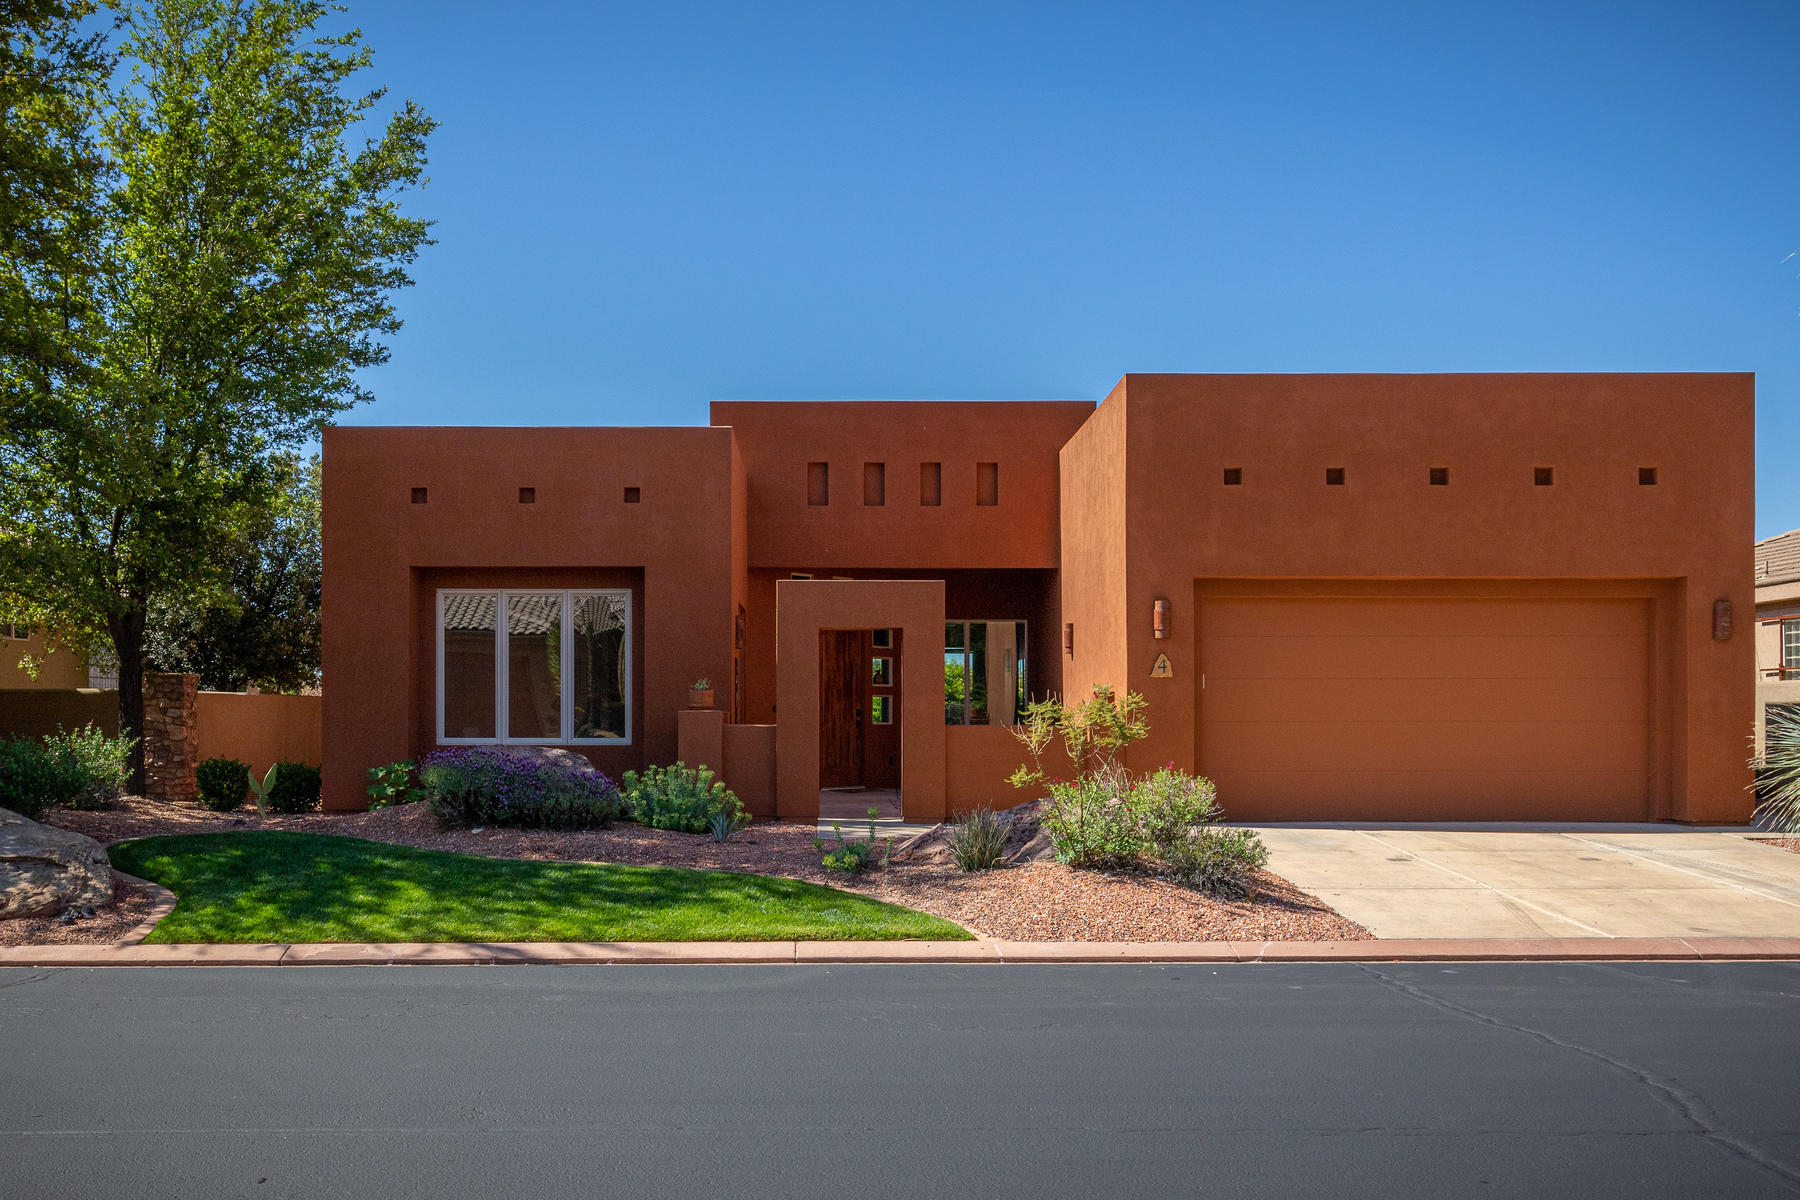 Single Family Homes for Sale at Vermilion Cliffs 340 N Snow Canyon Dr #4 Ivins, Utah 84738 United States